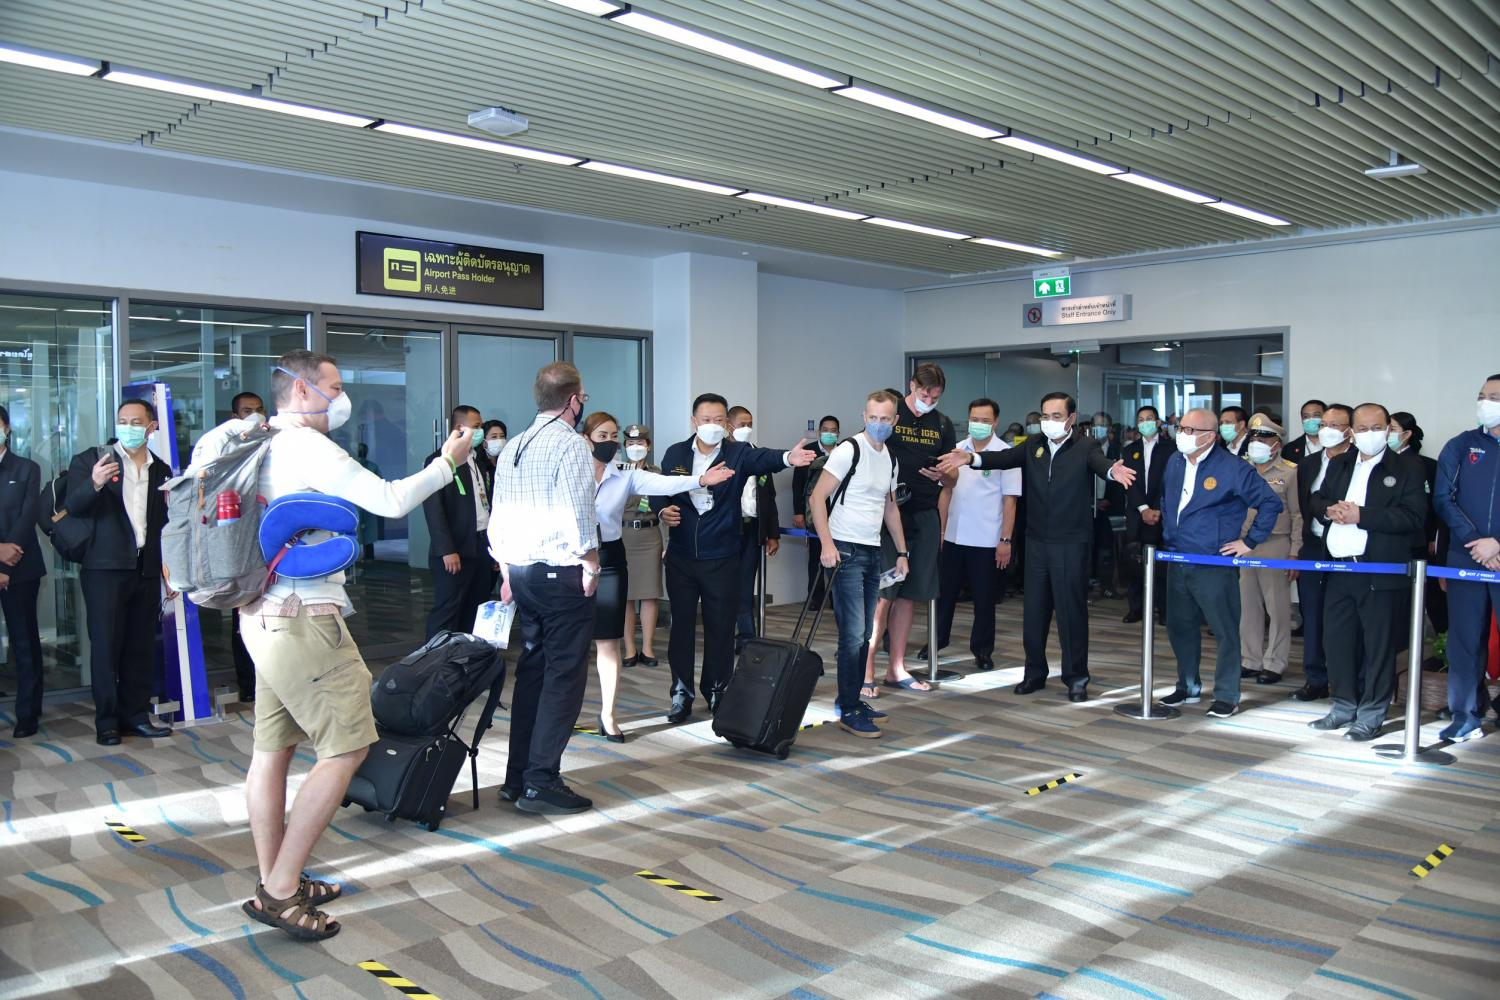 Prime Minister Prayut Chan-o-cha welcomes foreign tourists from a Singapore Airlines flight at Phuket airport on Thursday. (Government House photo)